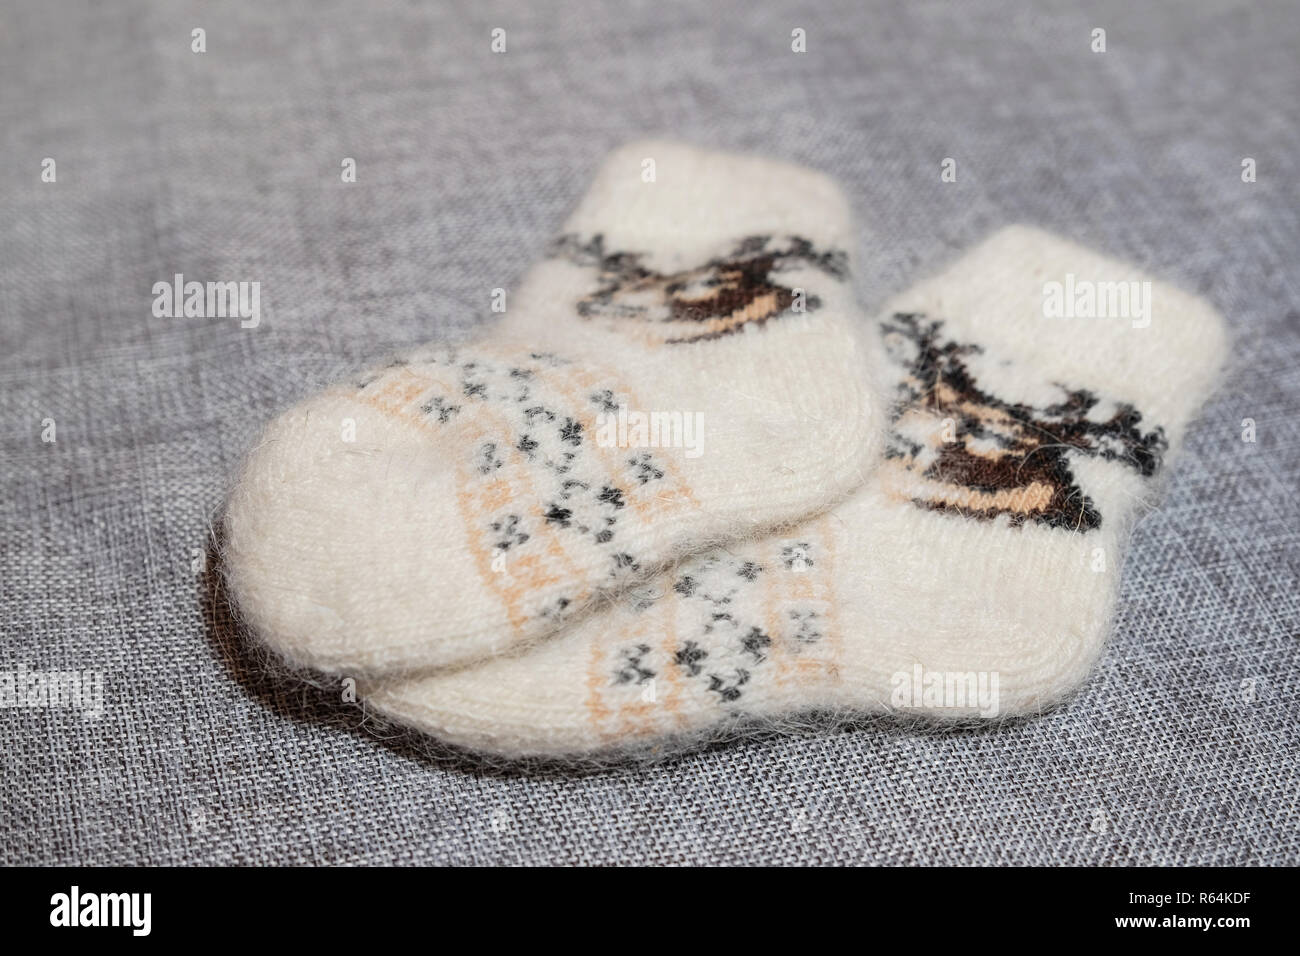 Baby wool socks on a light background close-up. - Stock Image